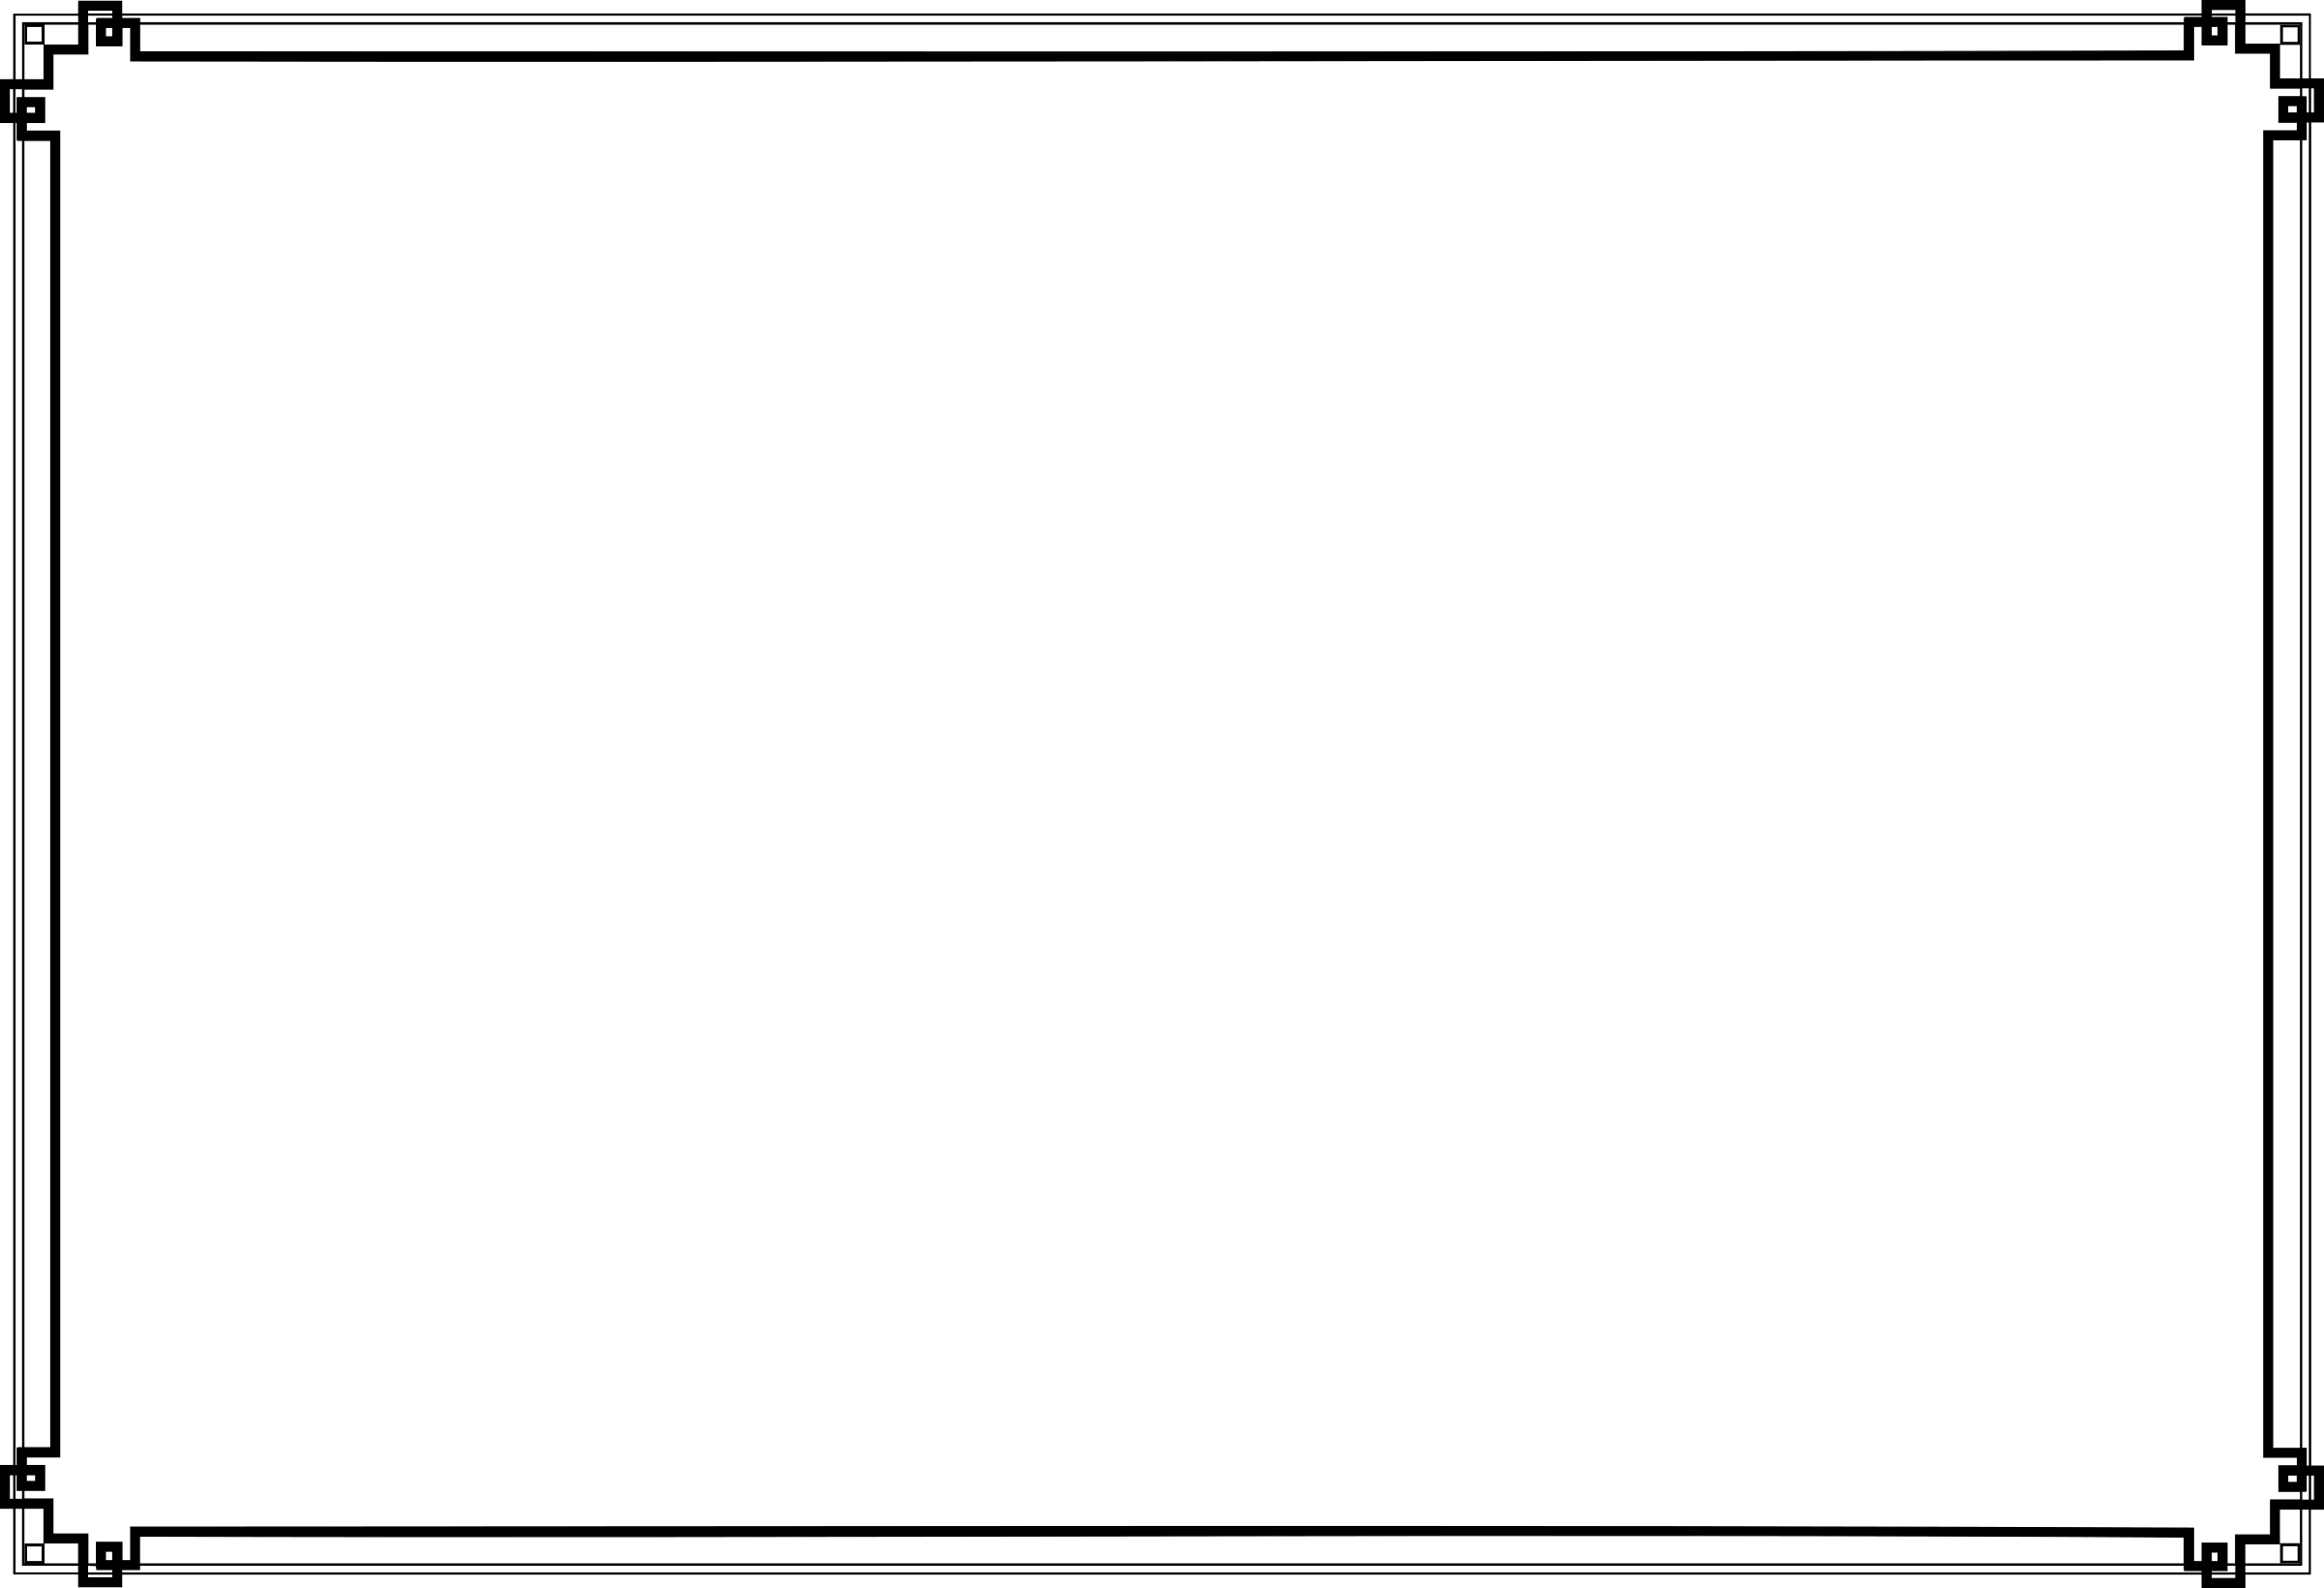 Art deco border png. Transparent stickpng